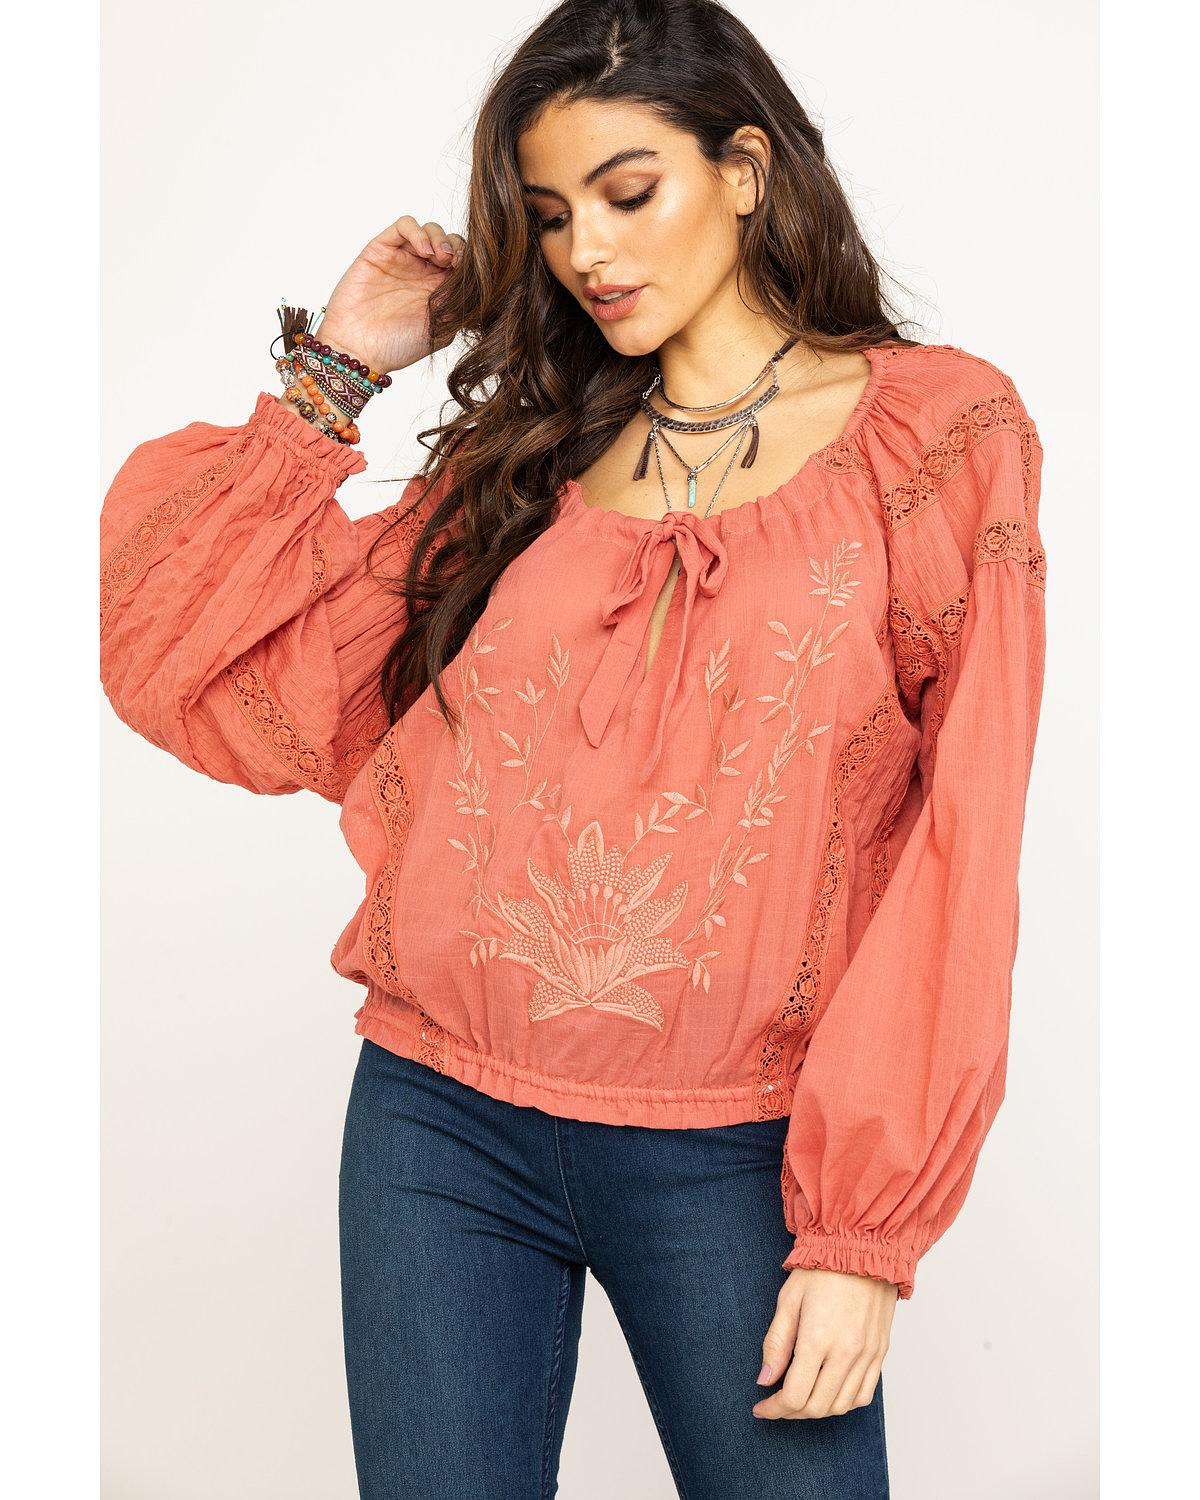 Women's Clearance Clothing